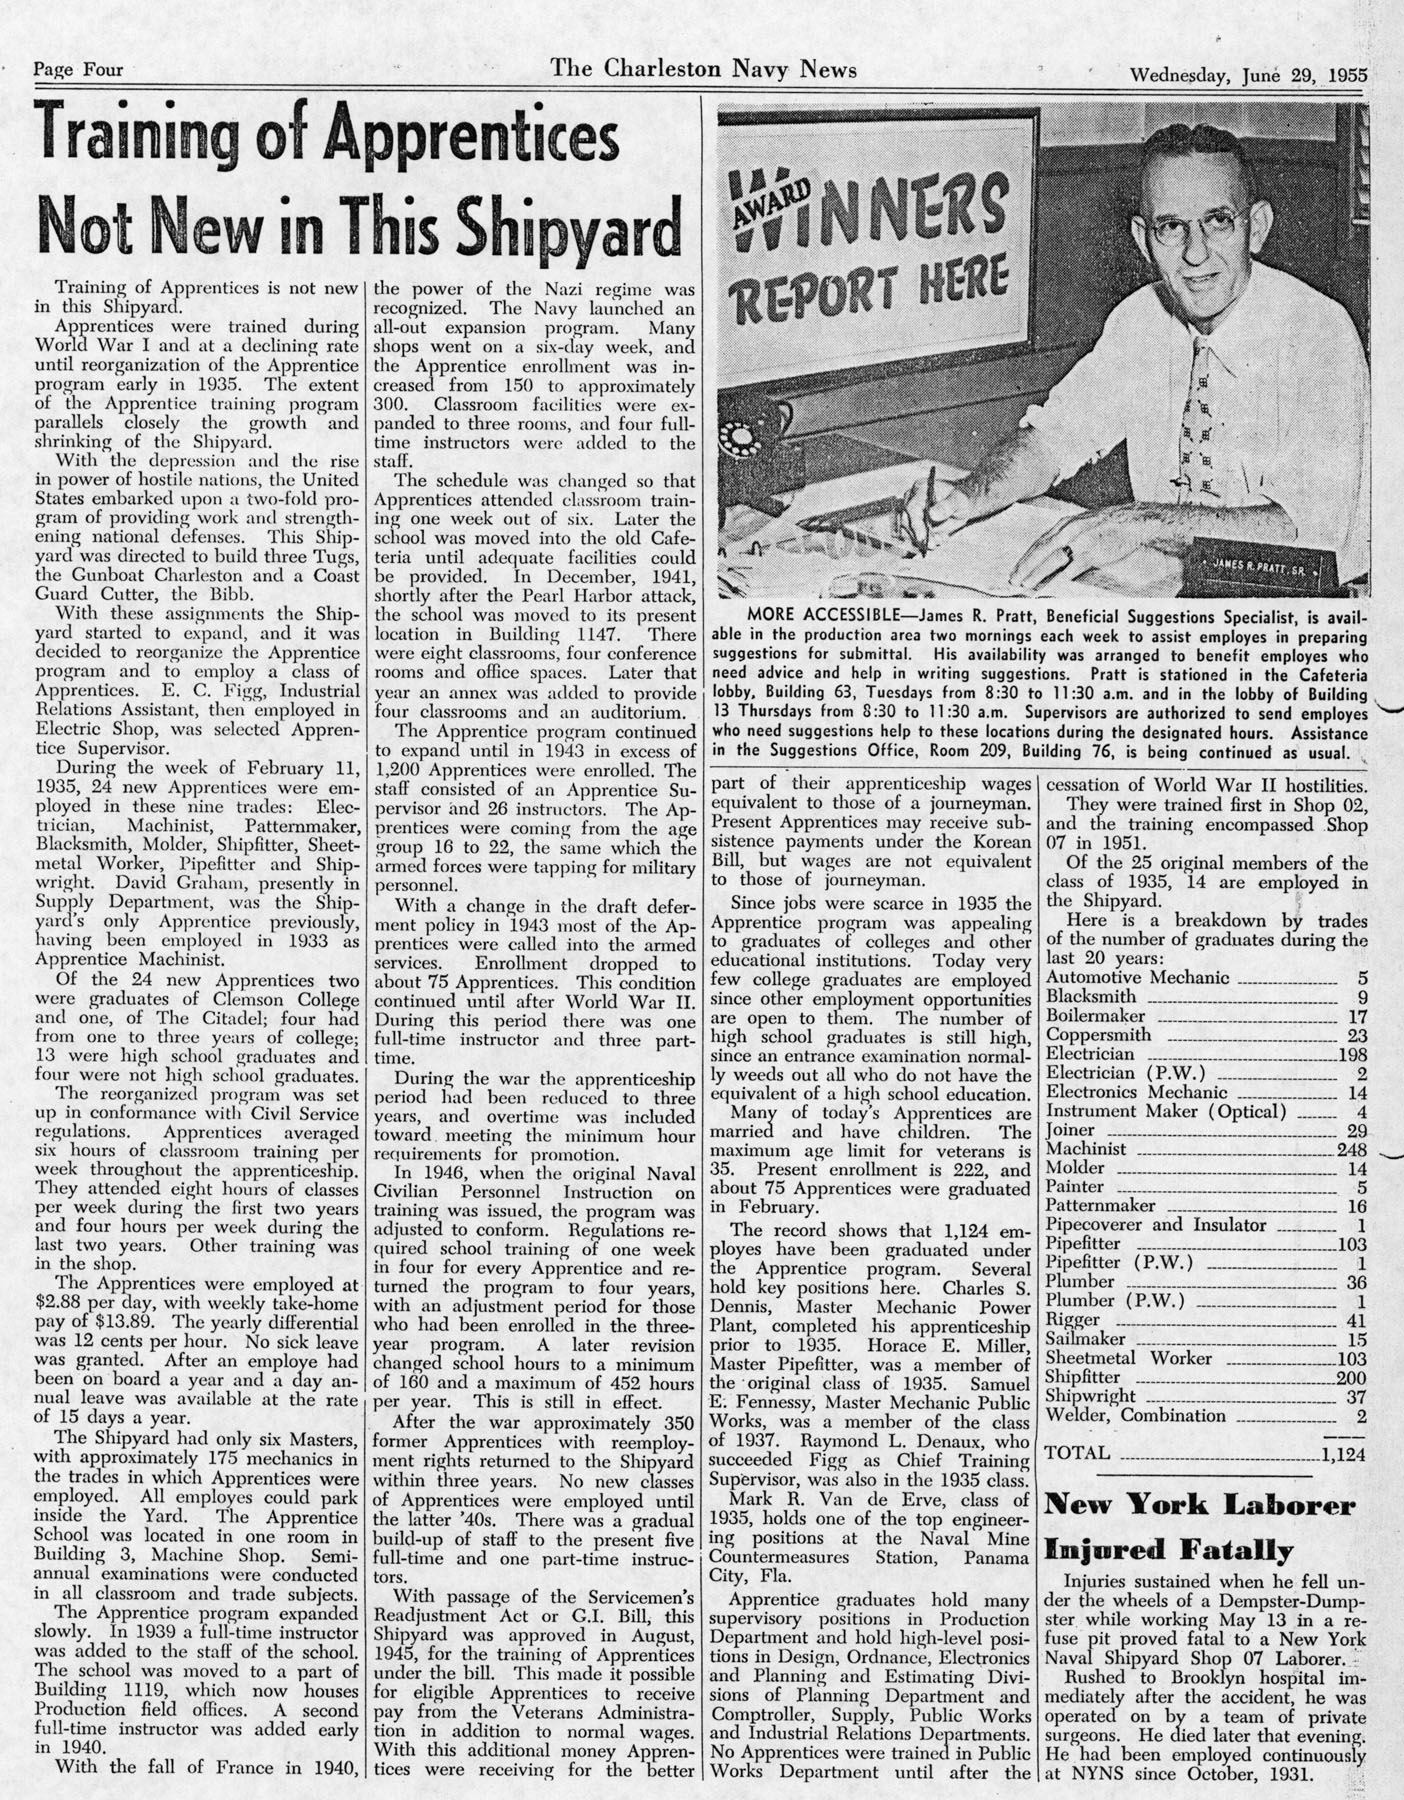 The Charleston Navy News, Volume 13, Edition 25, page iv